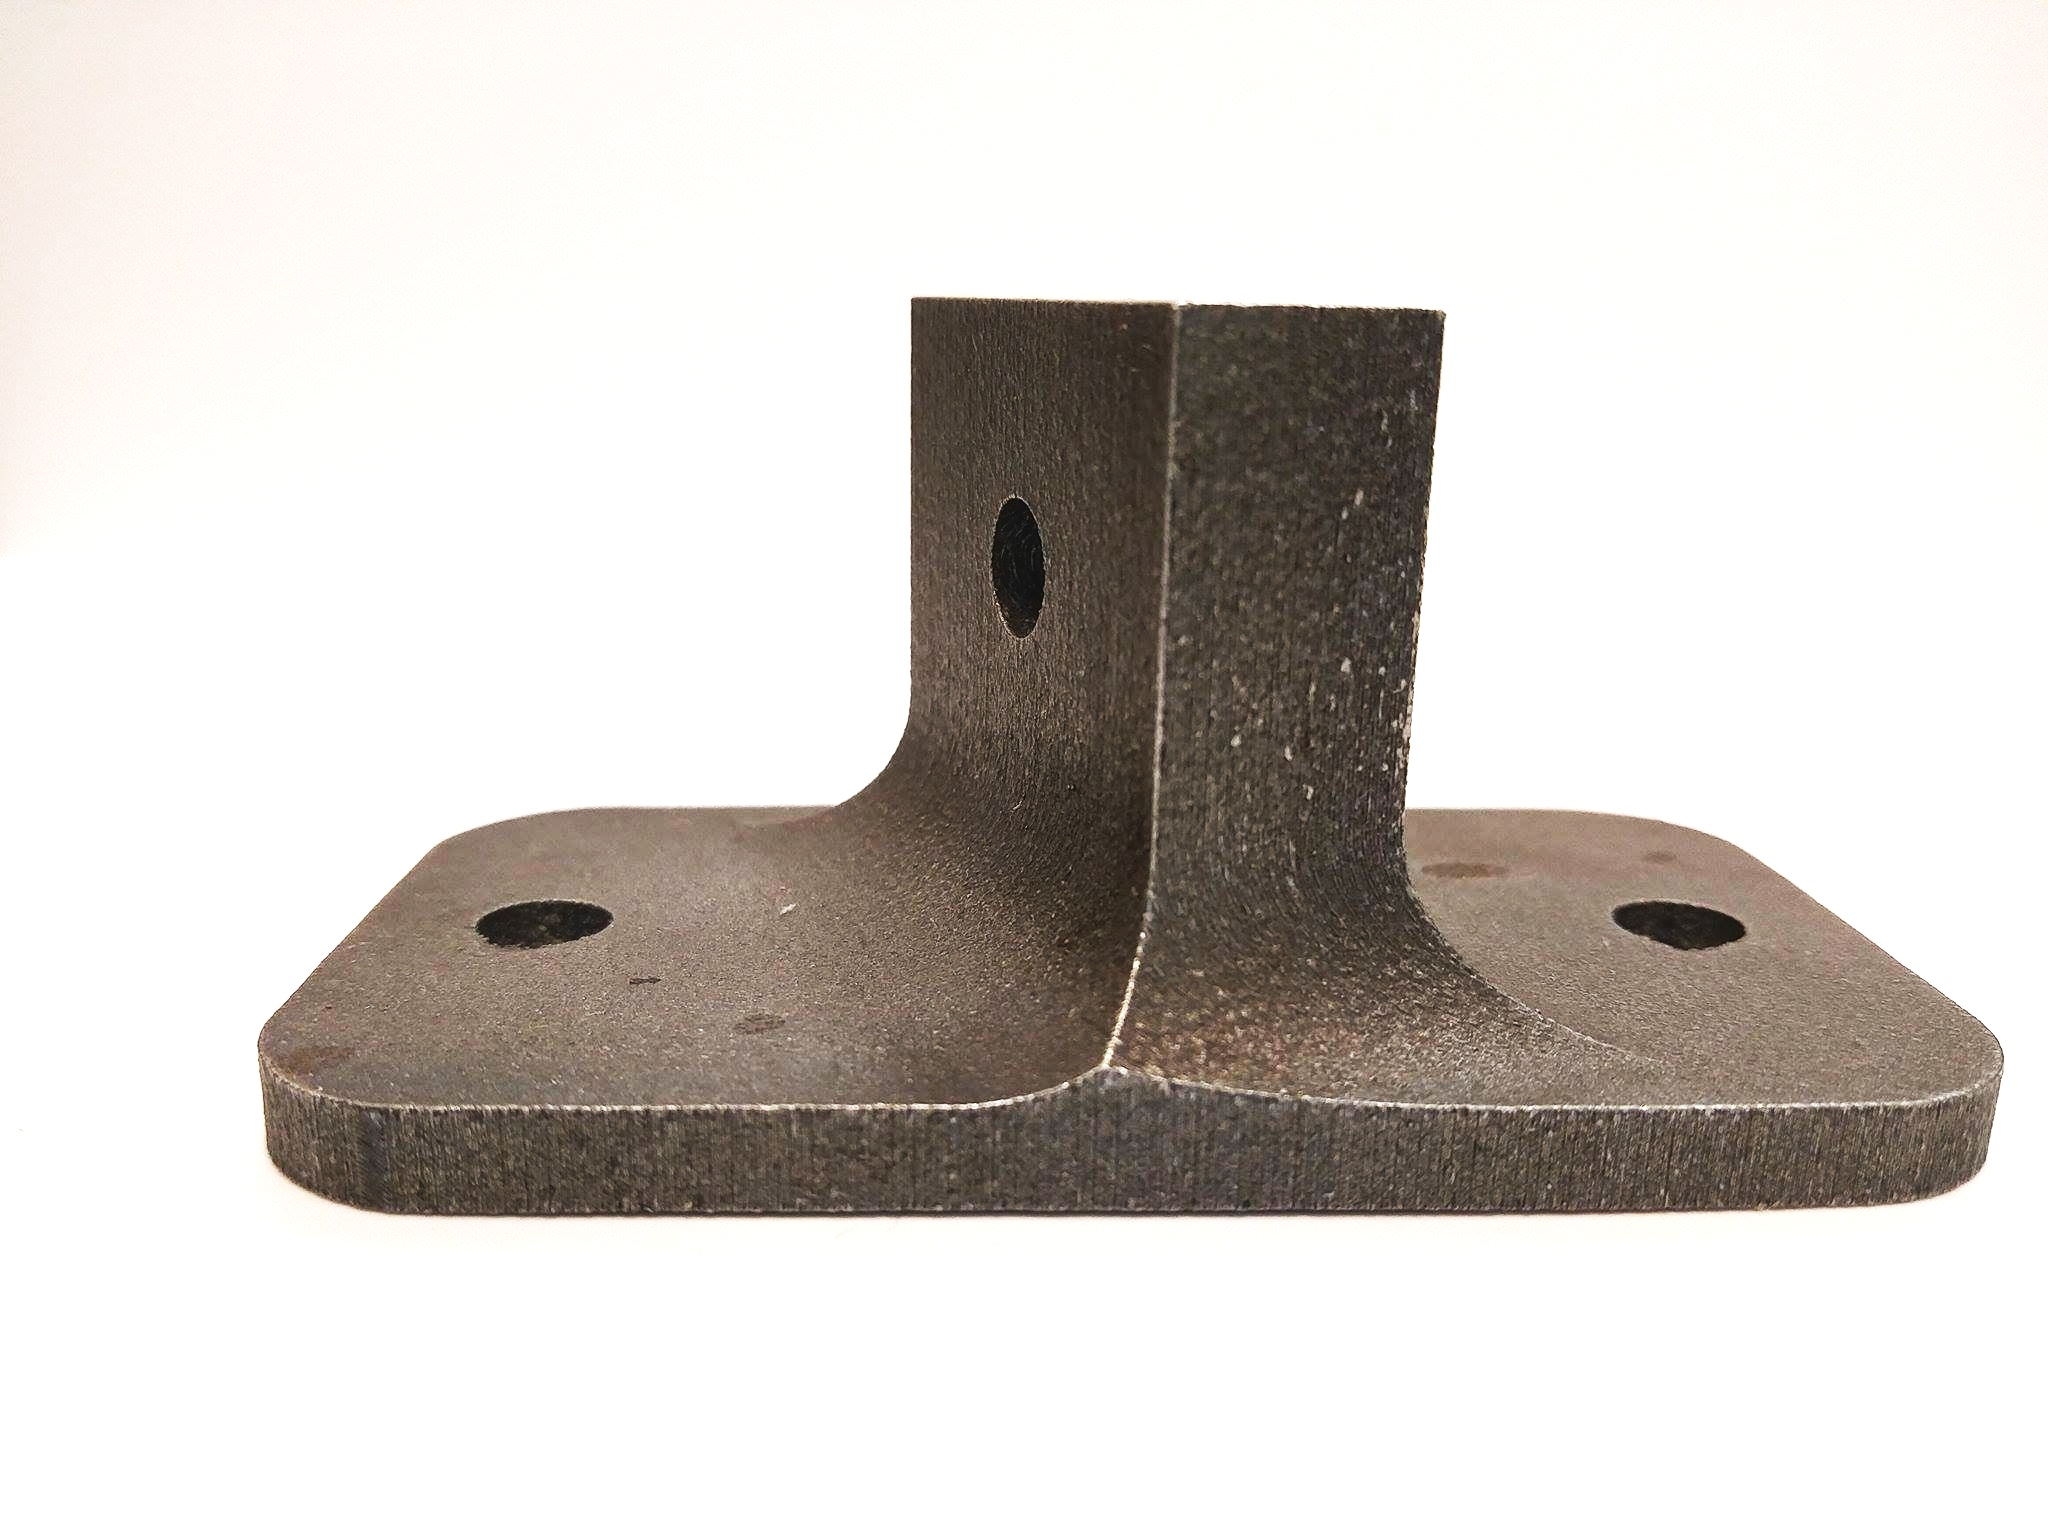 Industrial-strength DMLS 3D printed metal bracket made with maraging steel MS1.